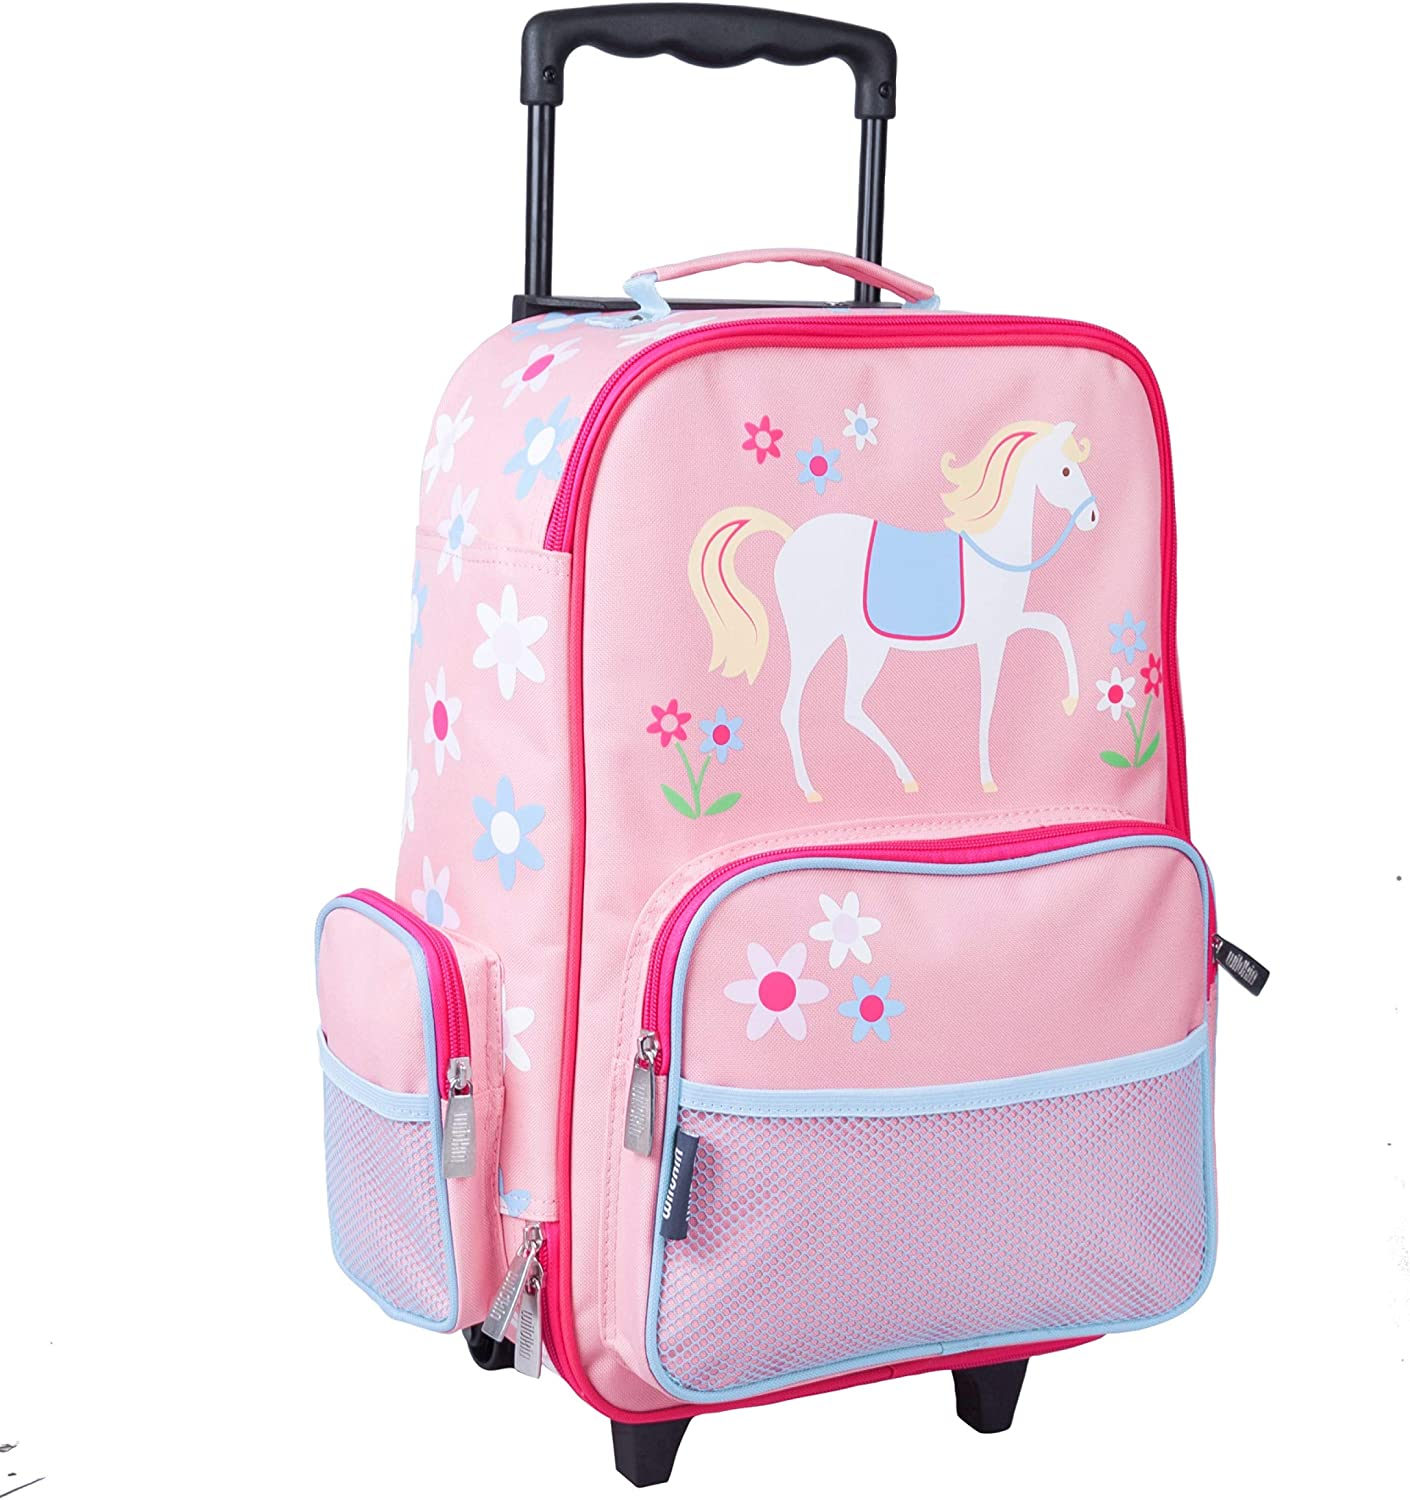 Wildkin Kids Rolling Suitcase for Boys and Girls, Kids Luggage is Carry-On Size and Perfect for School and Overnight Travel, Measures 16 x 11.5 x 6 Inches, BPA-free, Olive Kids (Horses)